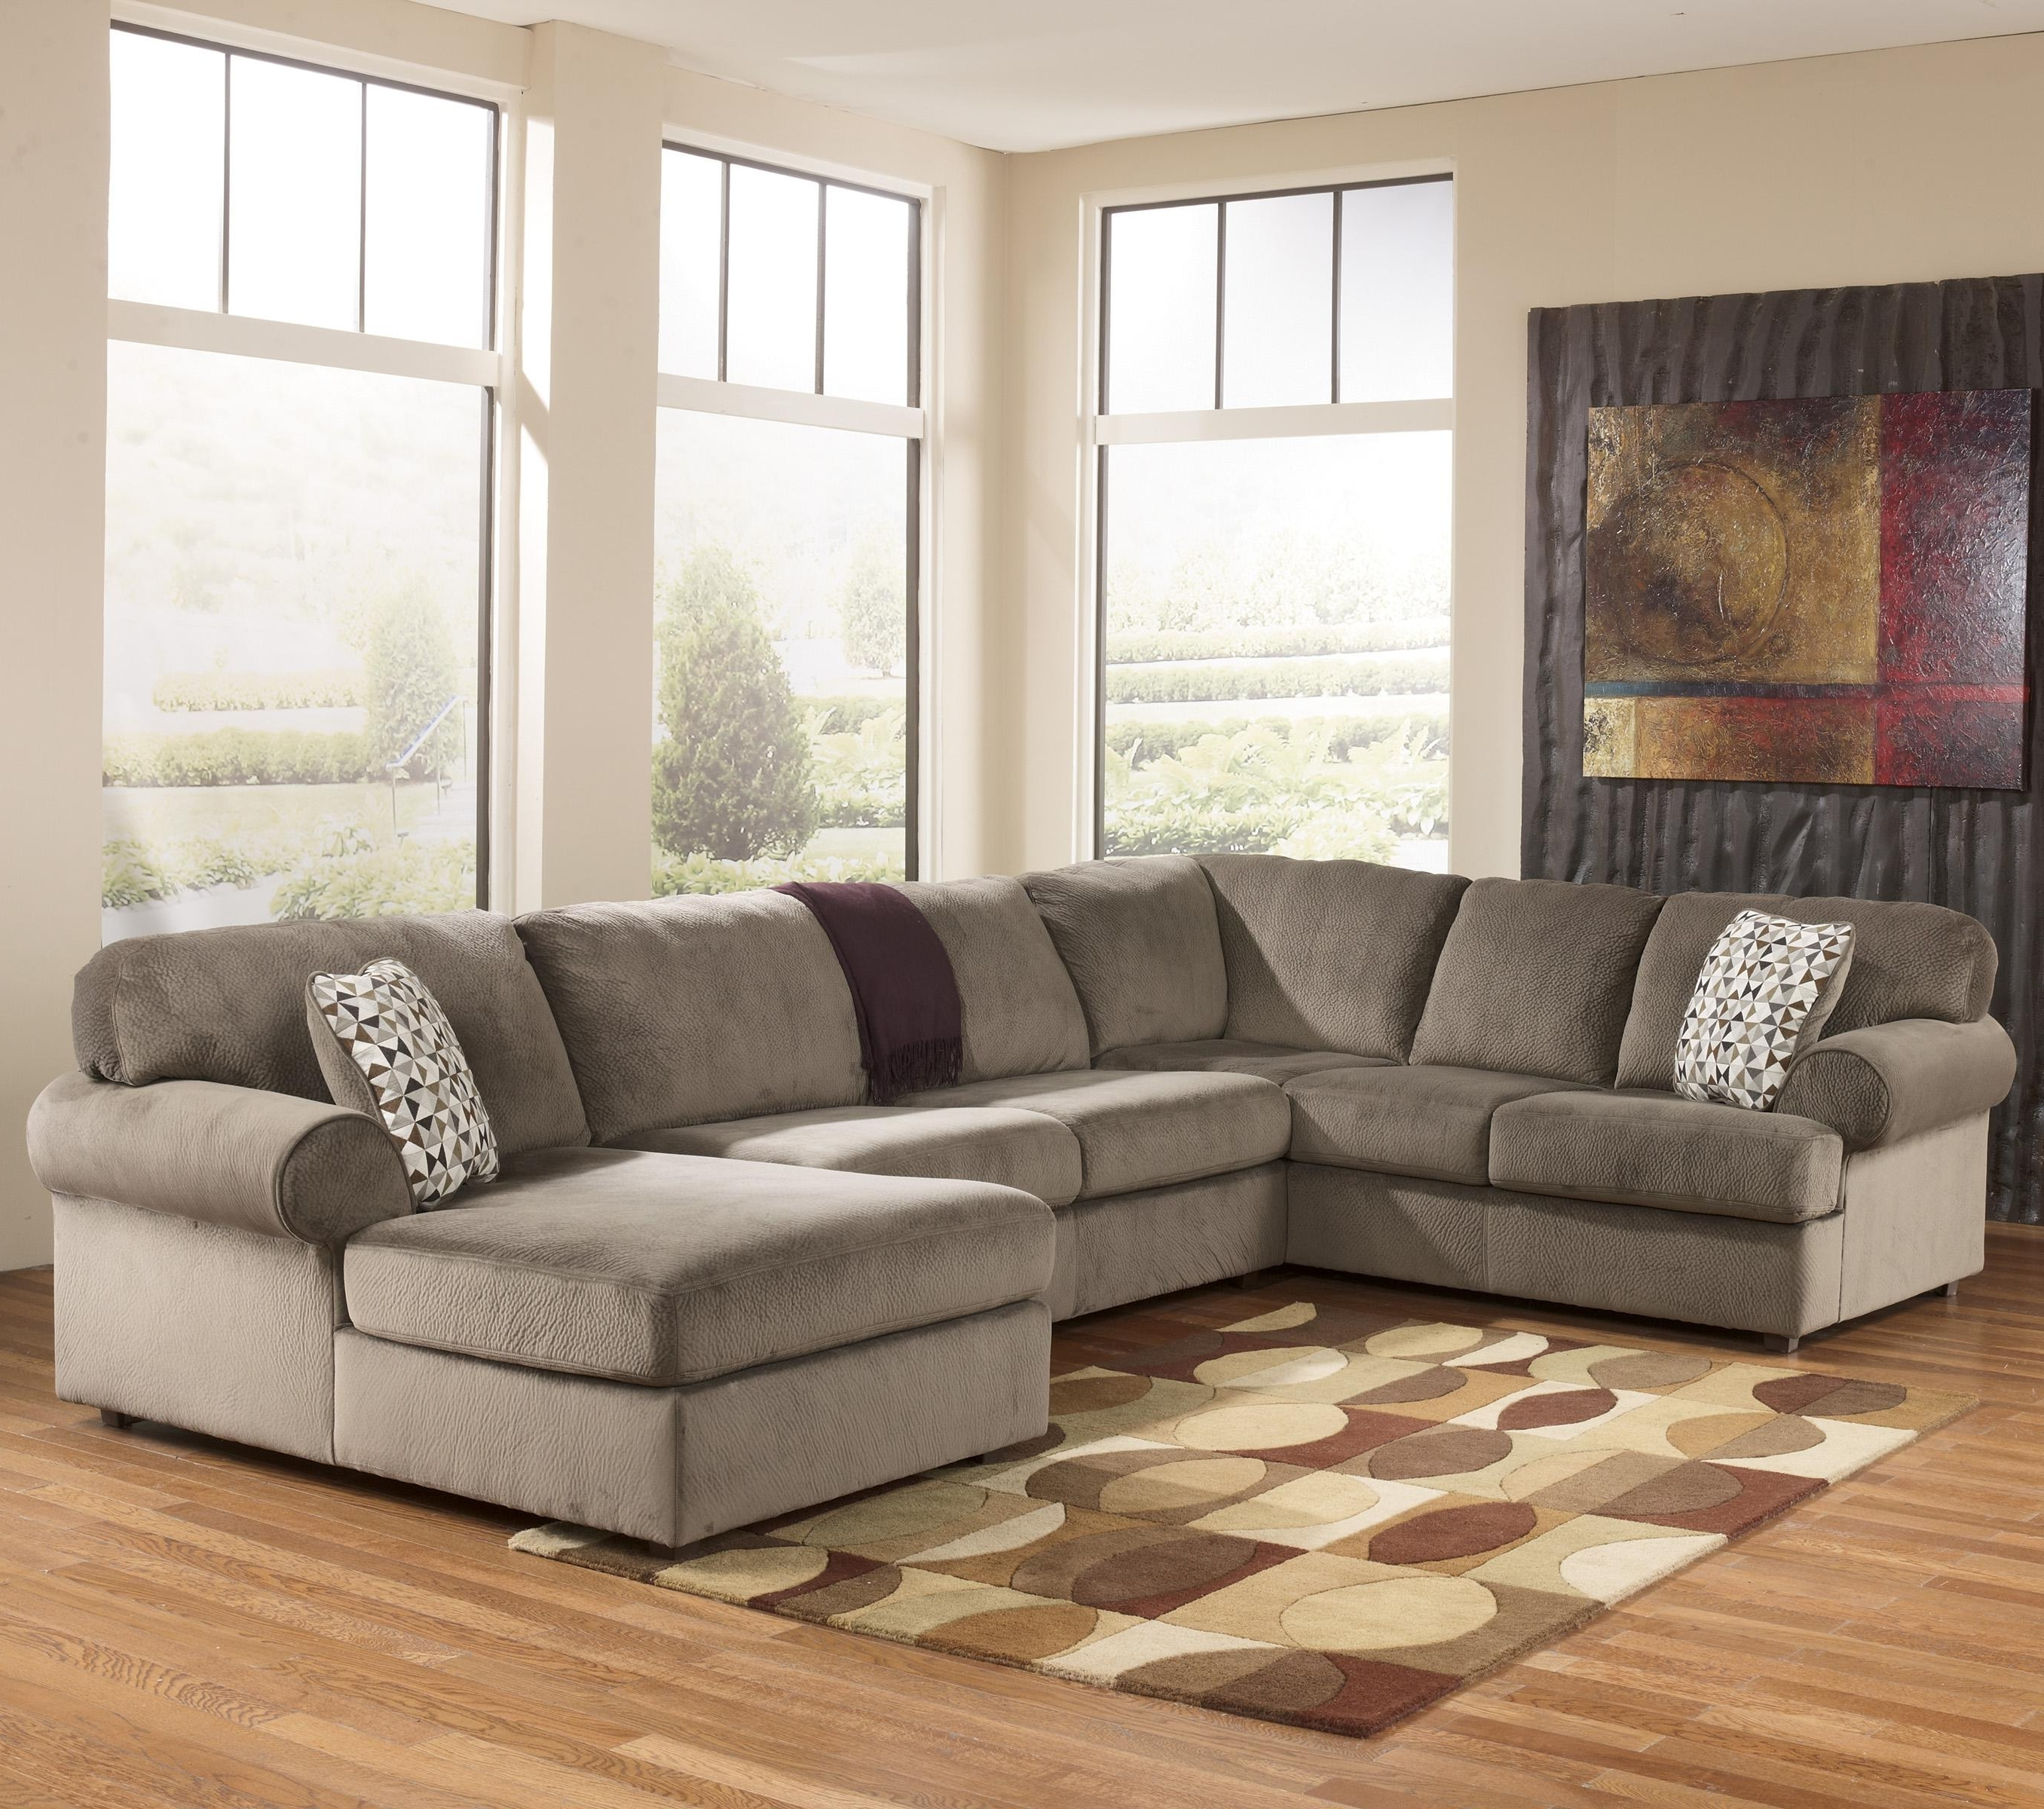 Ashley Within Nj Sectional Sofas (View 2 of 15)